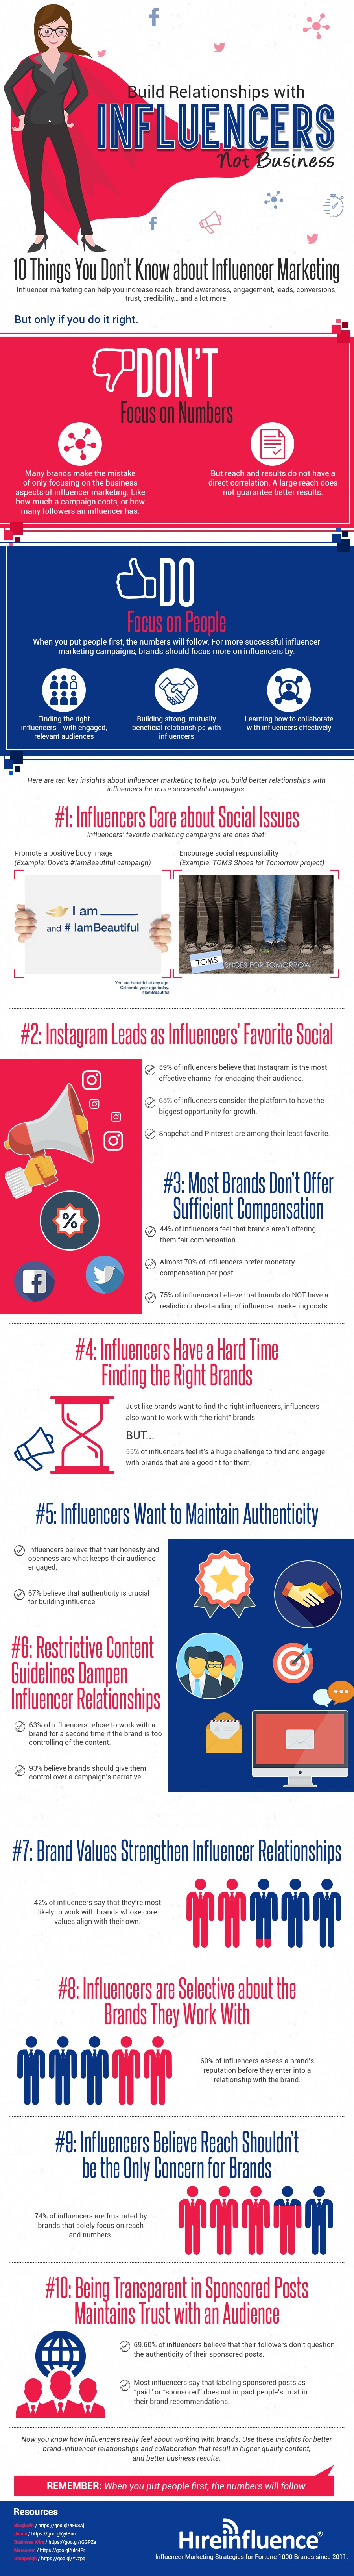 The Do's and Don'ts of Influencer Marketing - infographic